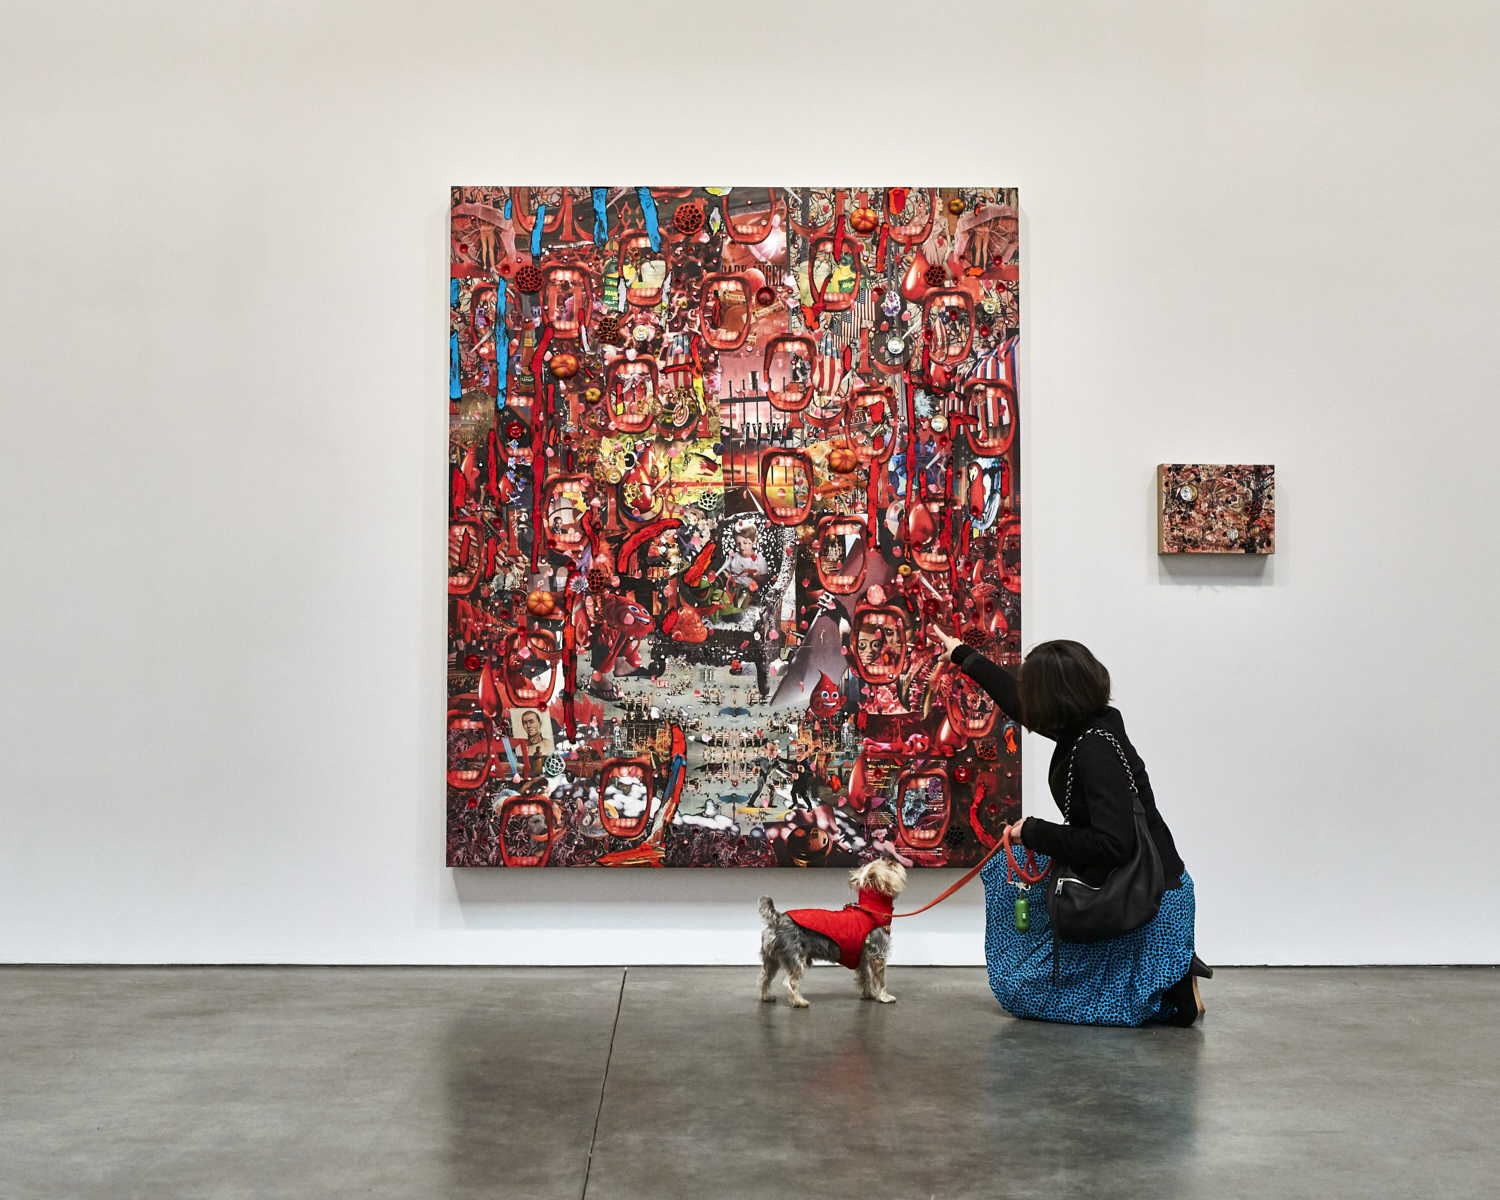 Jessica Dawson and Rocky with a painting by Elliott Hundley at Andrea Rosen Gallery.